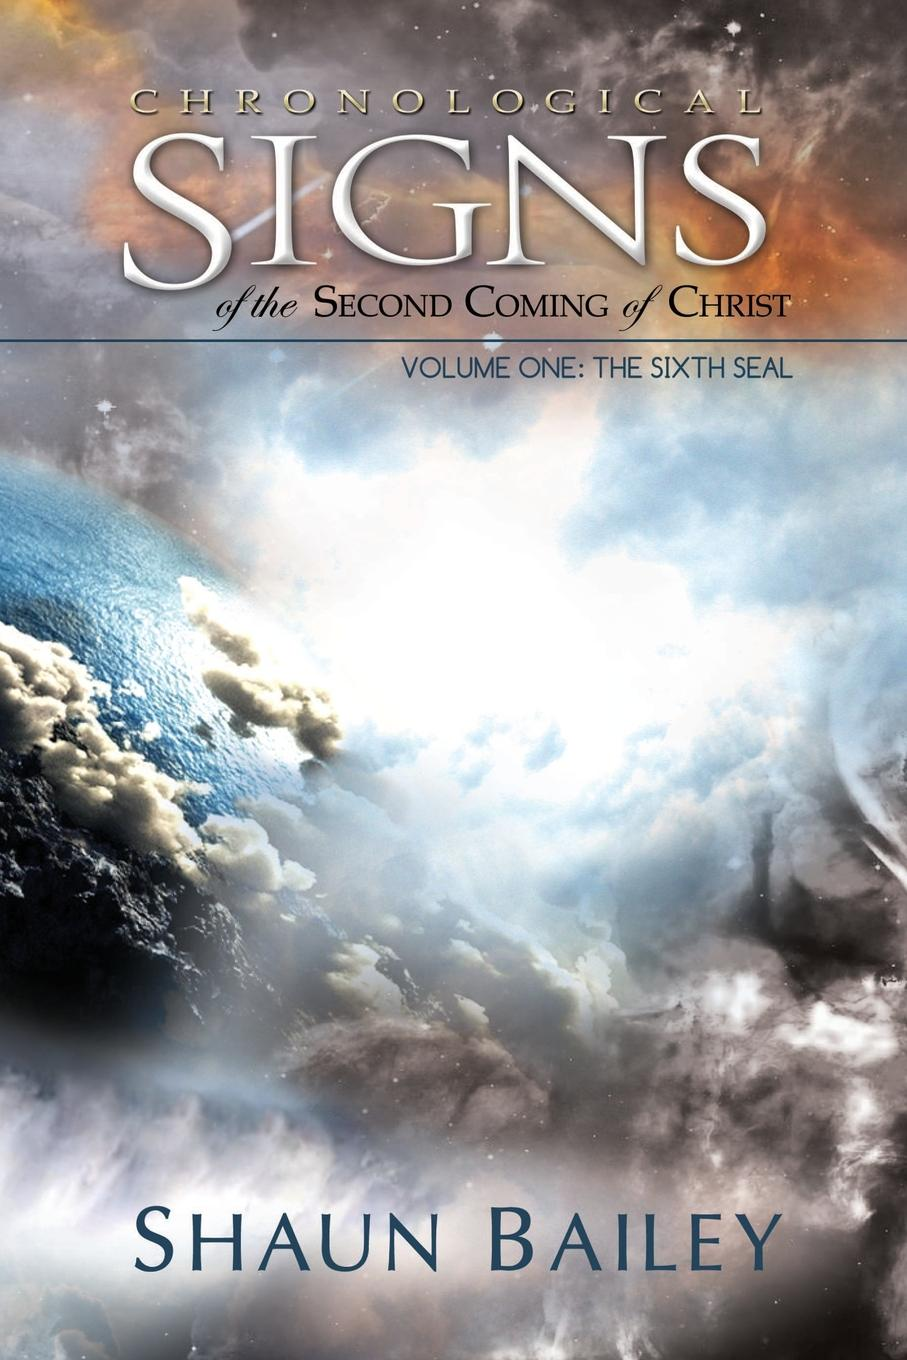 Shaun Bailey Chronological Signs of the Second Coming of Christ james caleb mcintosh the coming crisis and second coming of christ in the spring of 1884 microform